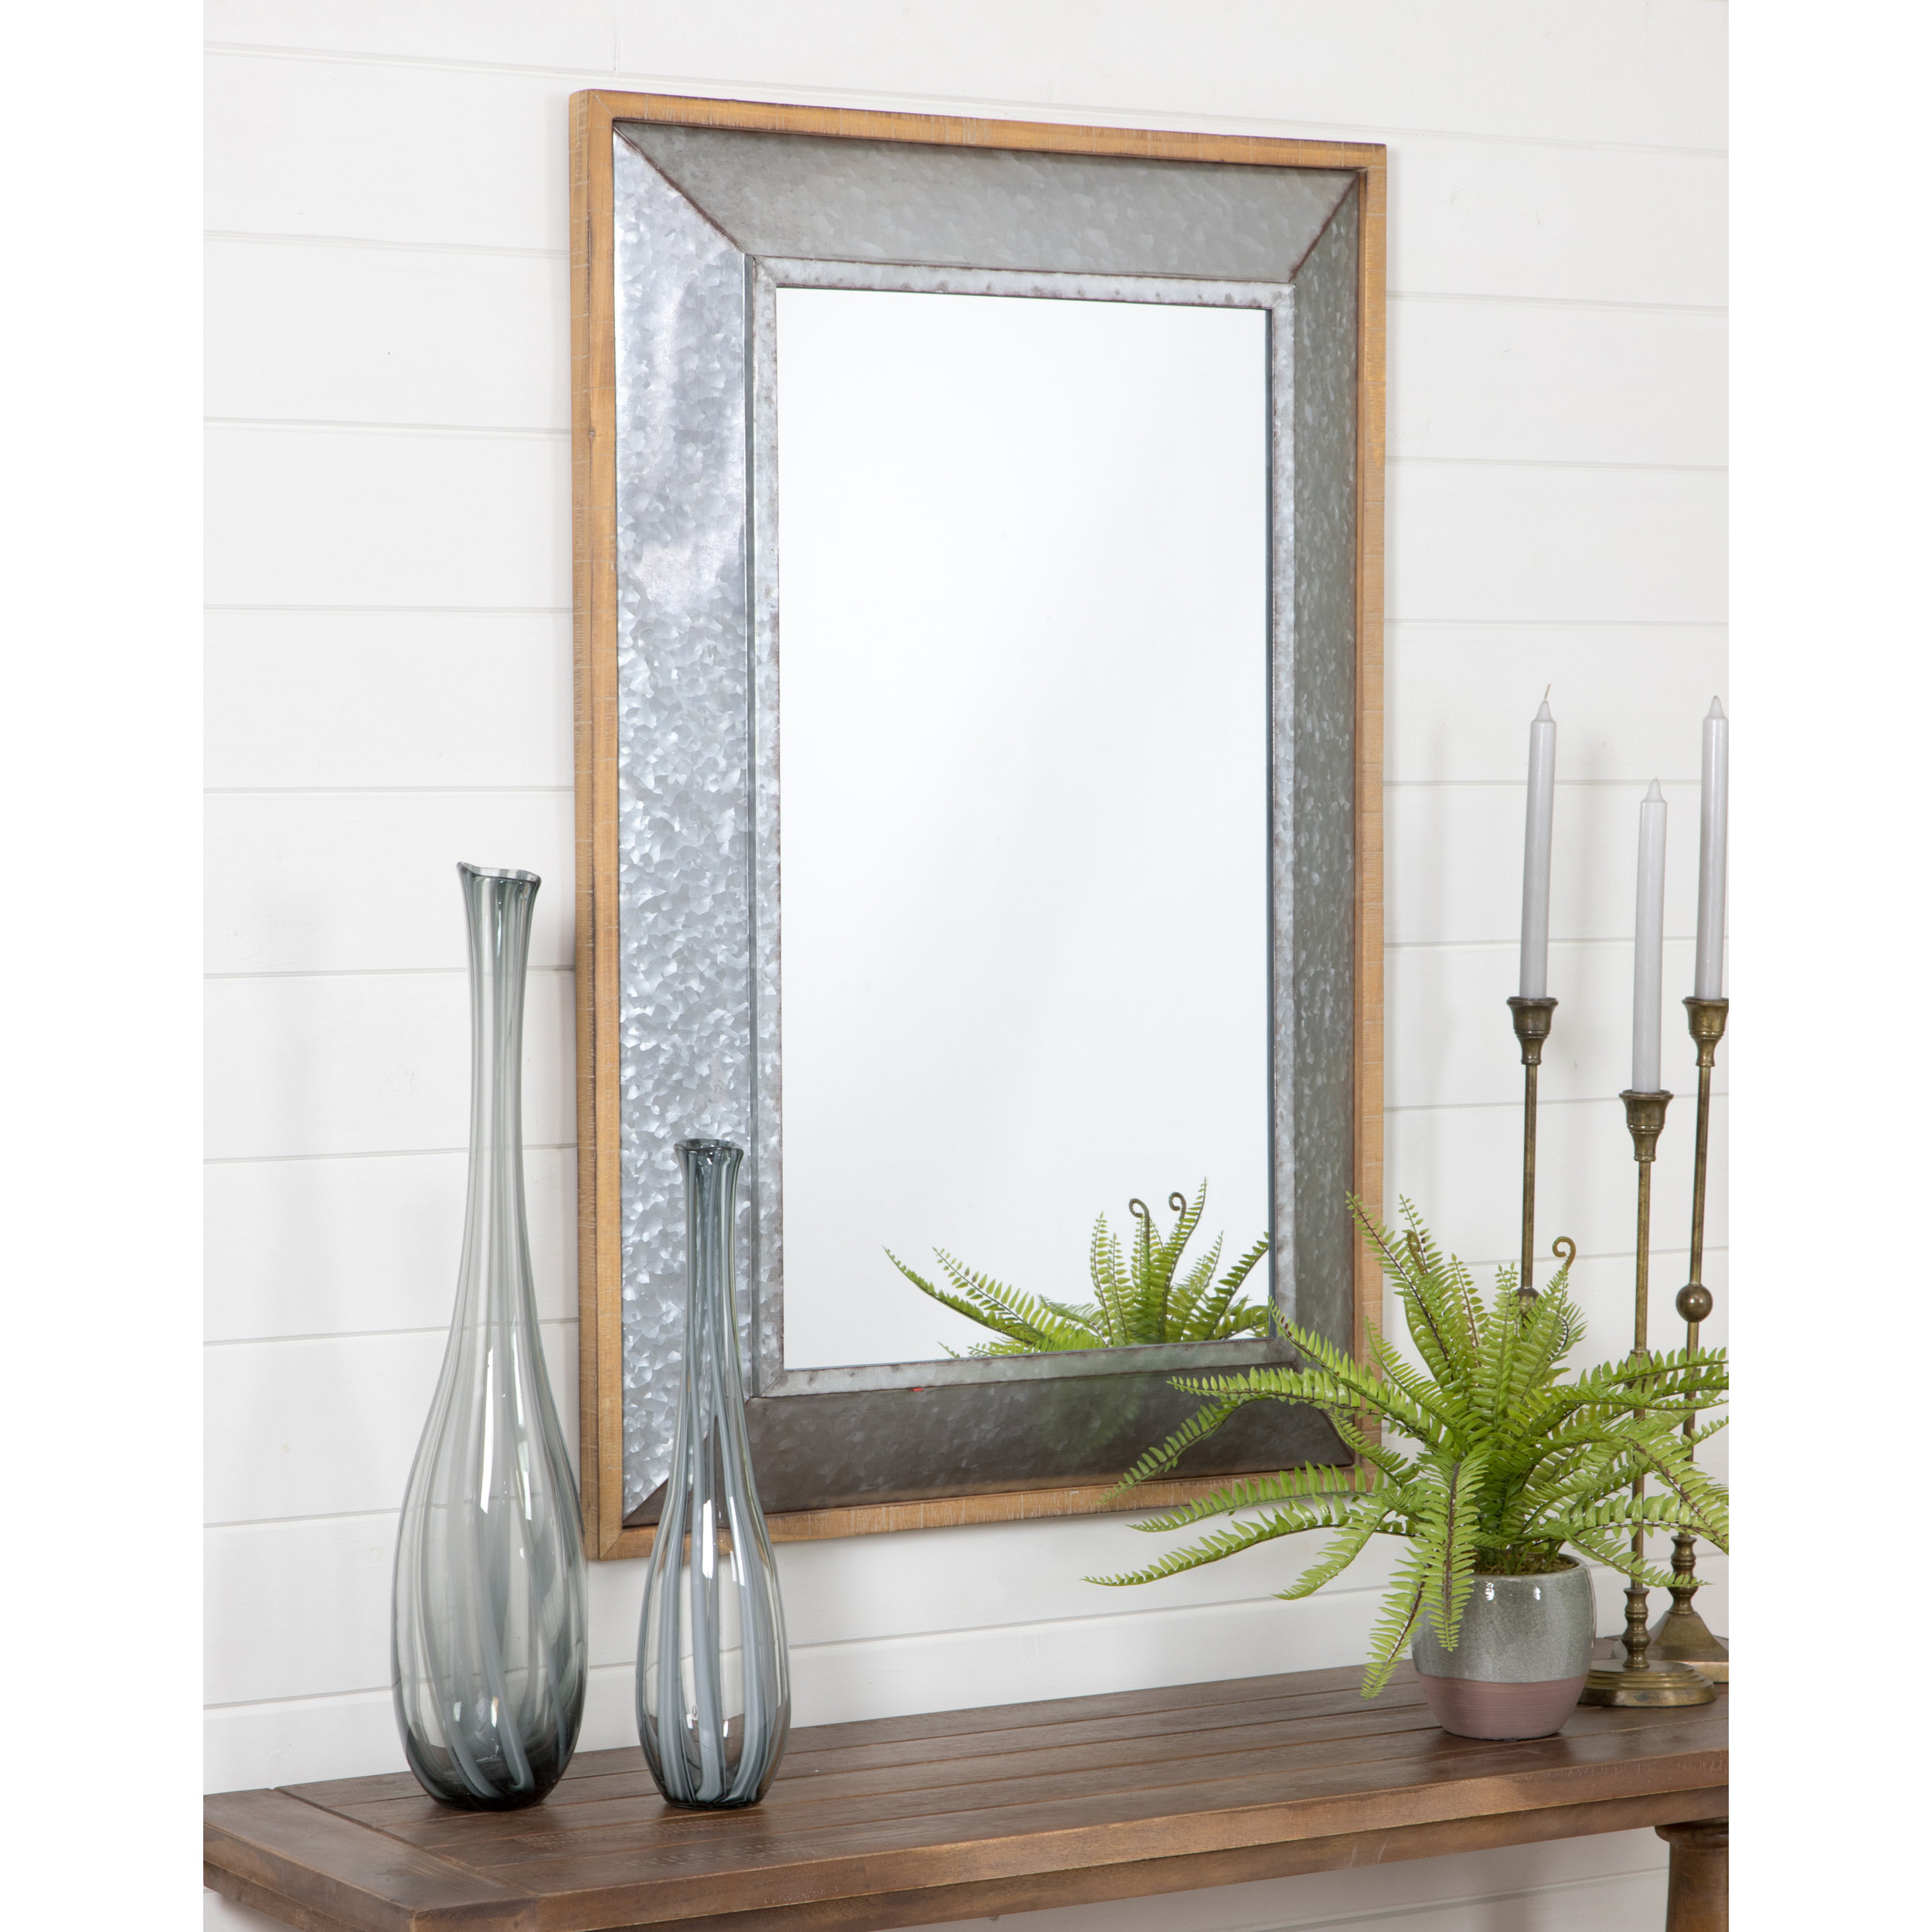 Dillinger Farmhouse Wall Mirror With Epinal Shabby Elegance Wall Mirrors (Gallery 16 of 30)